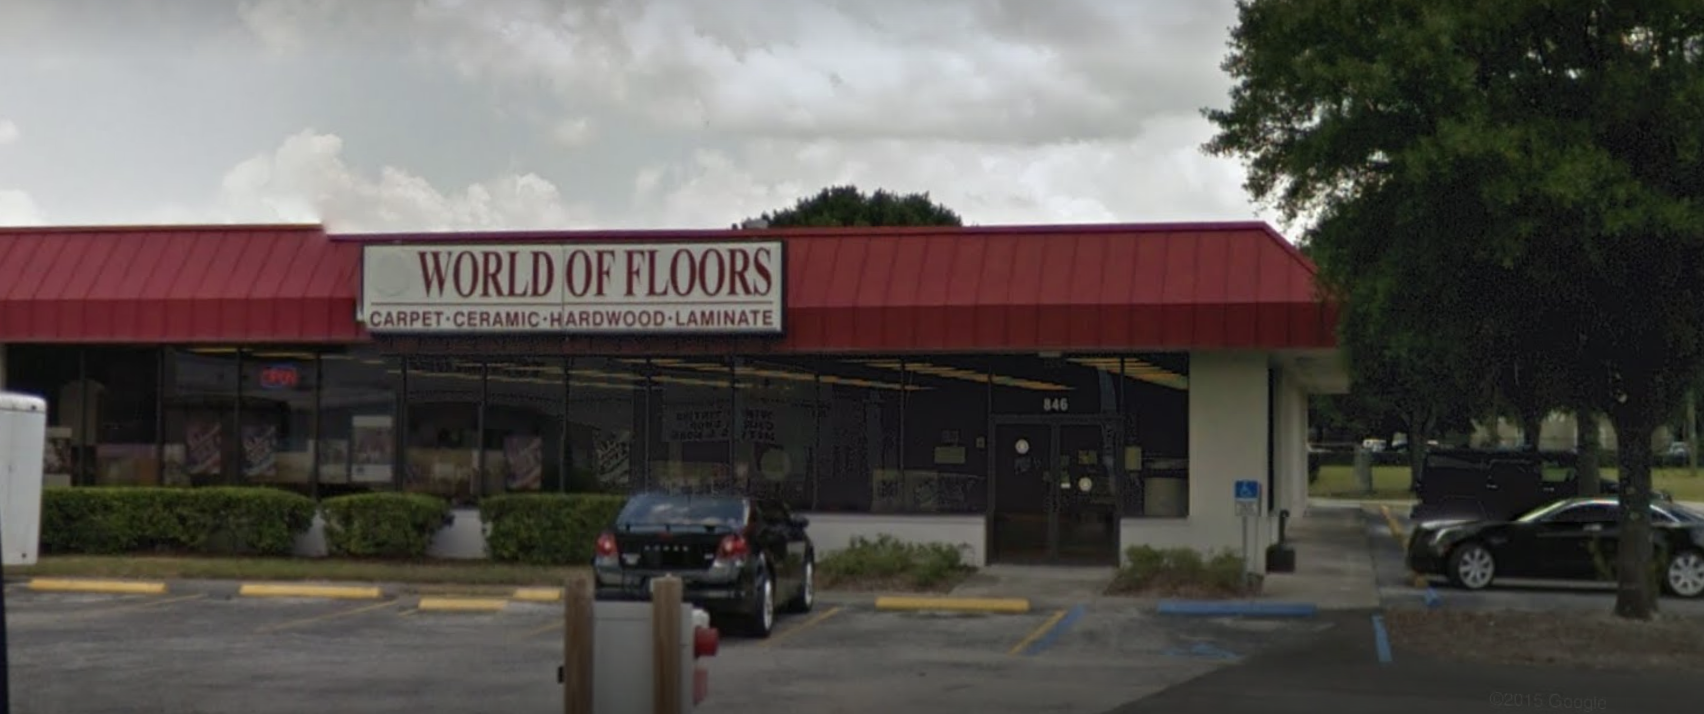 World Of Floors Florida - 846 E Brandon Blvd, Brandon, FL 33511